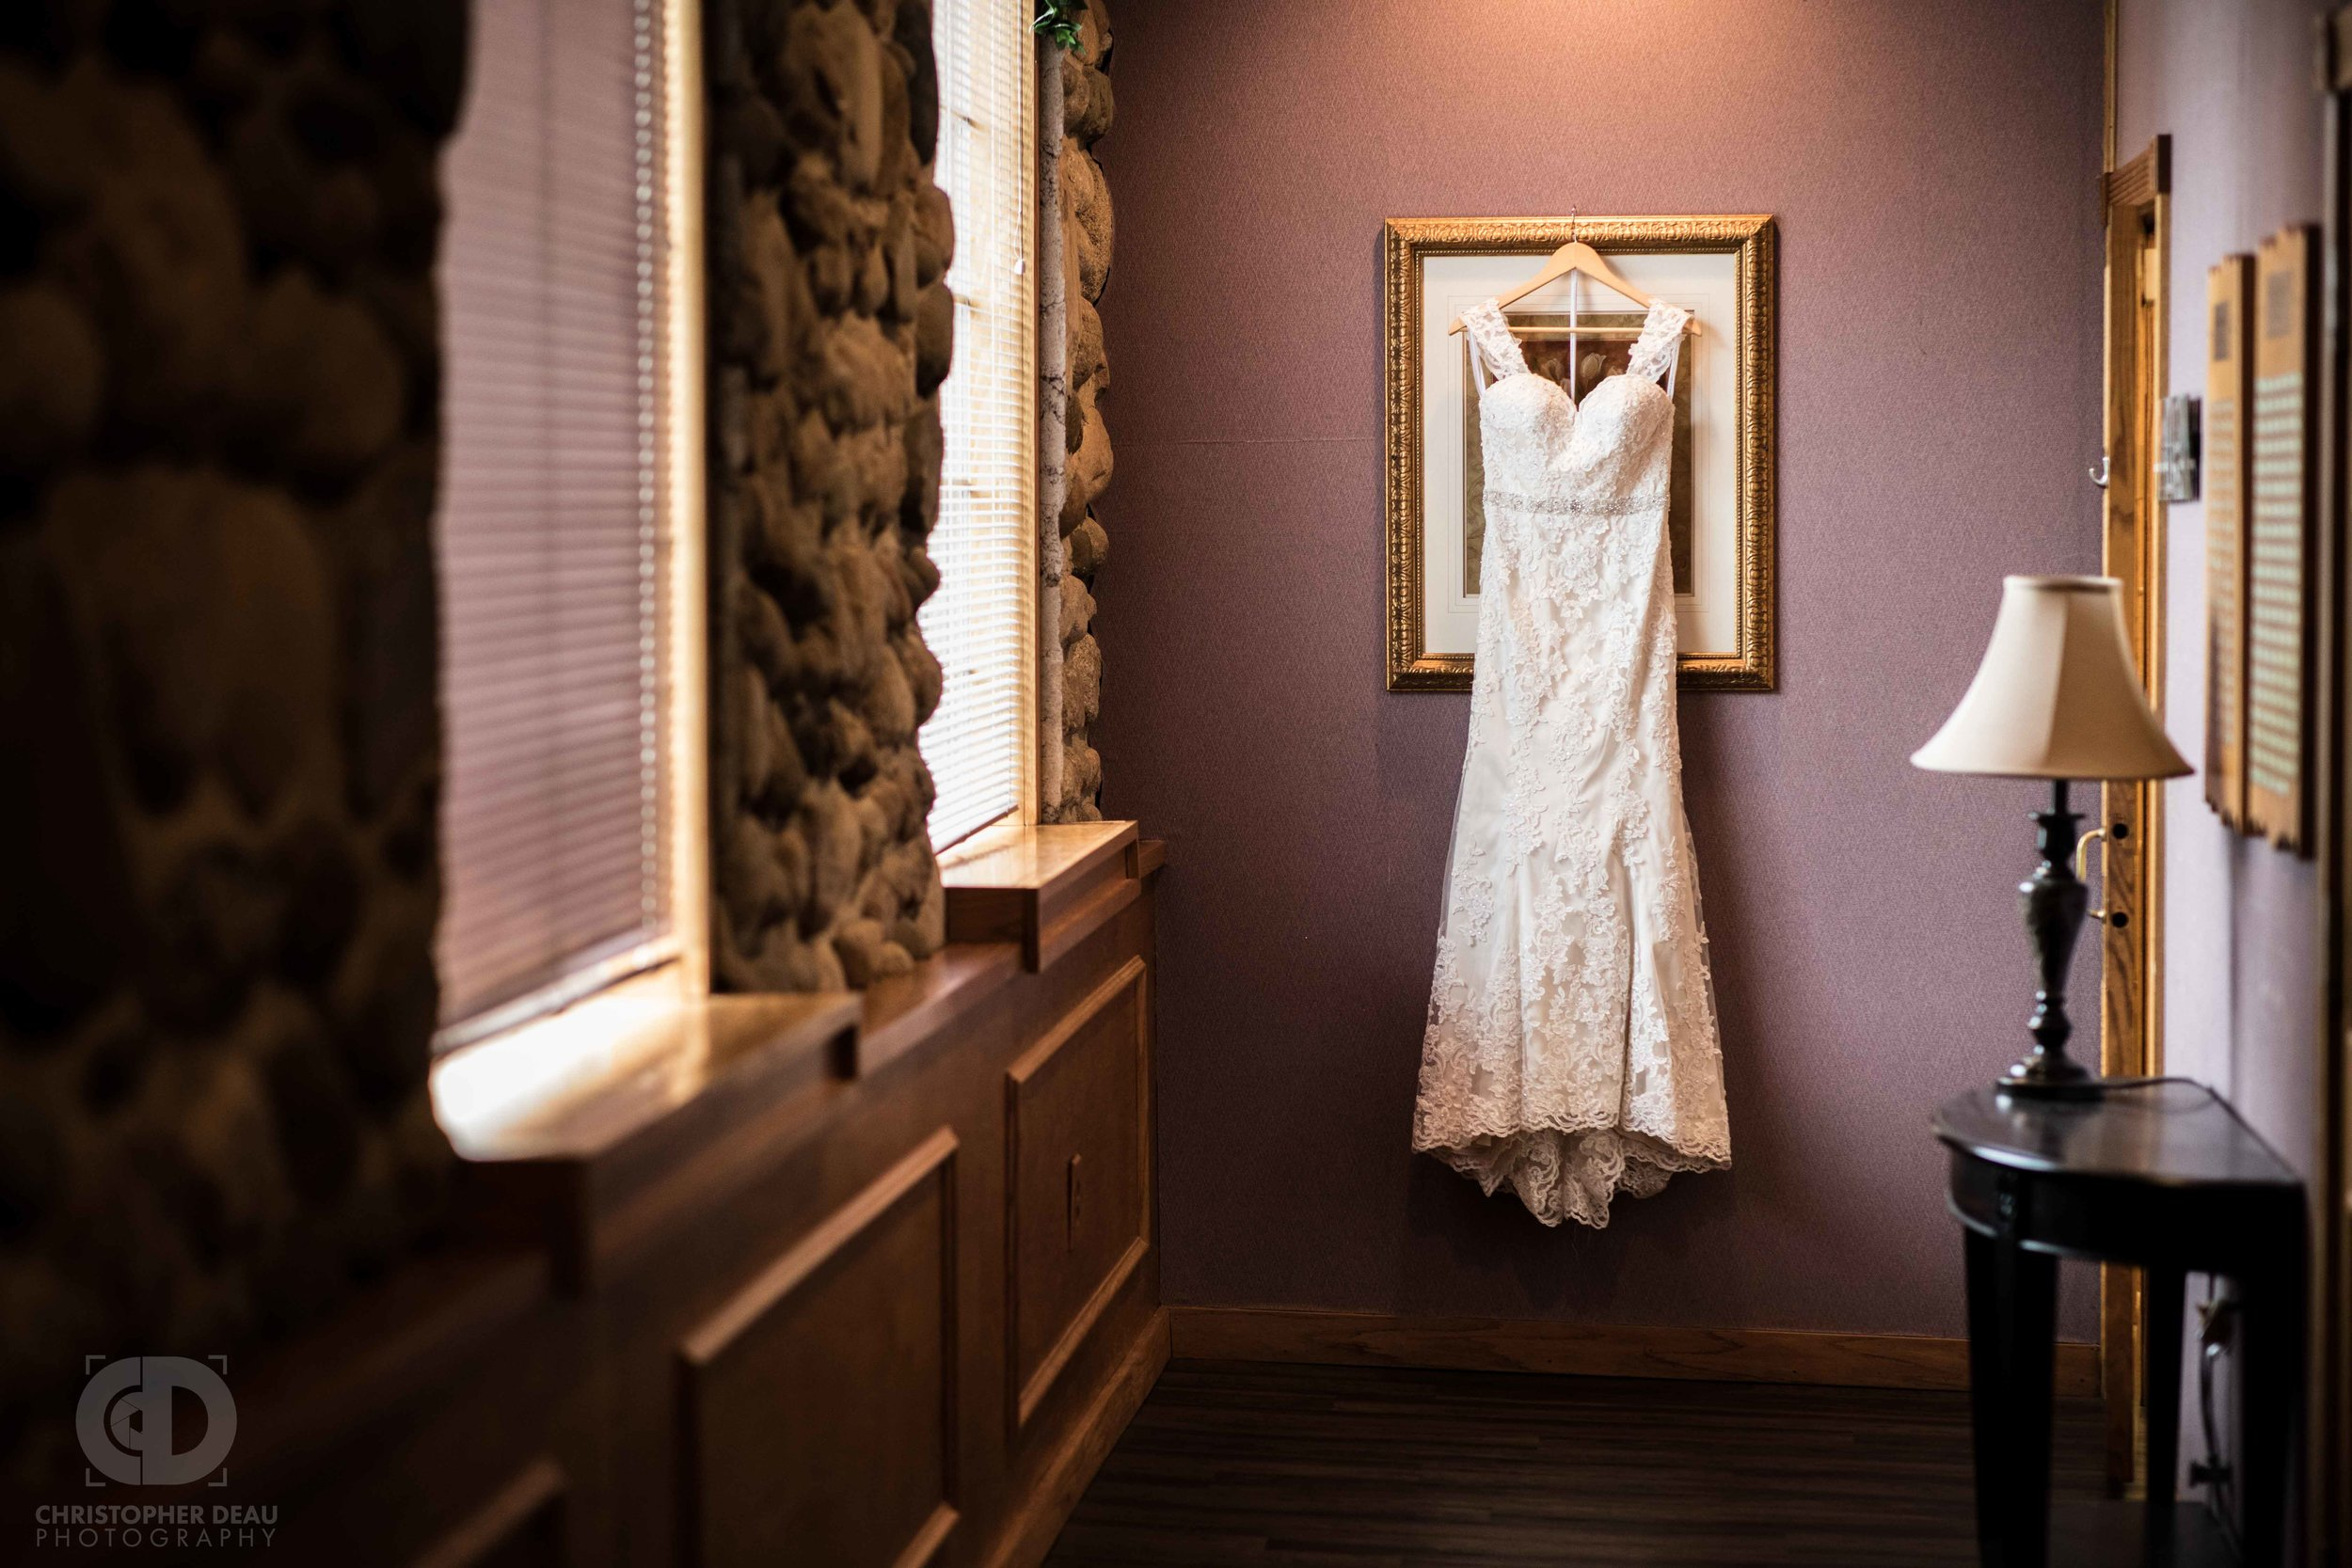 The brides white dress hanging at the end of a hallway